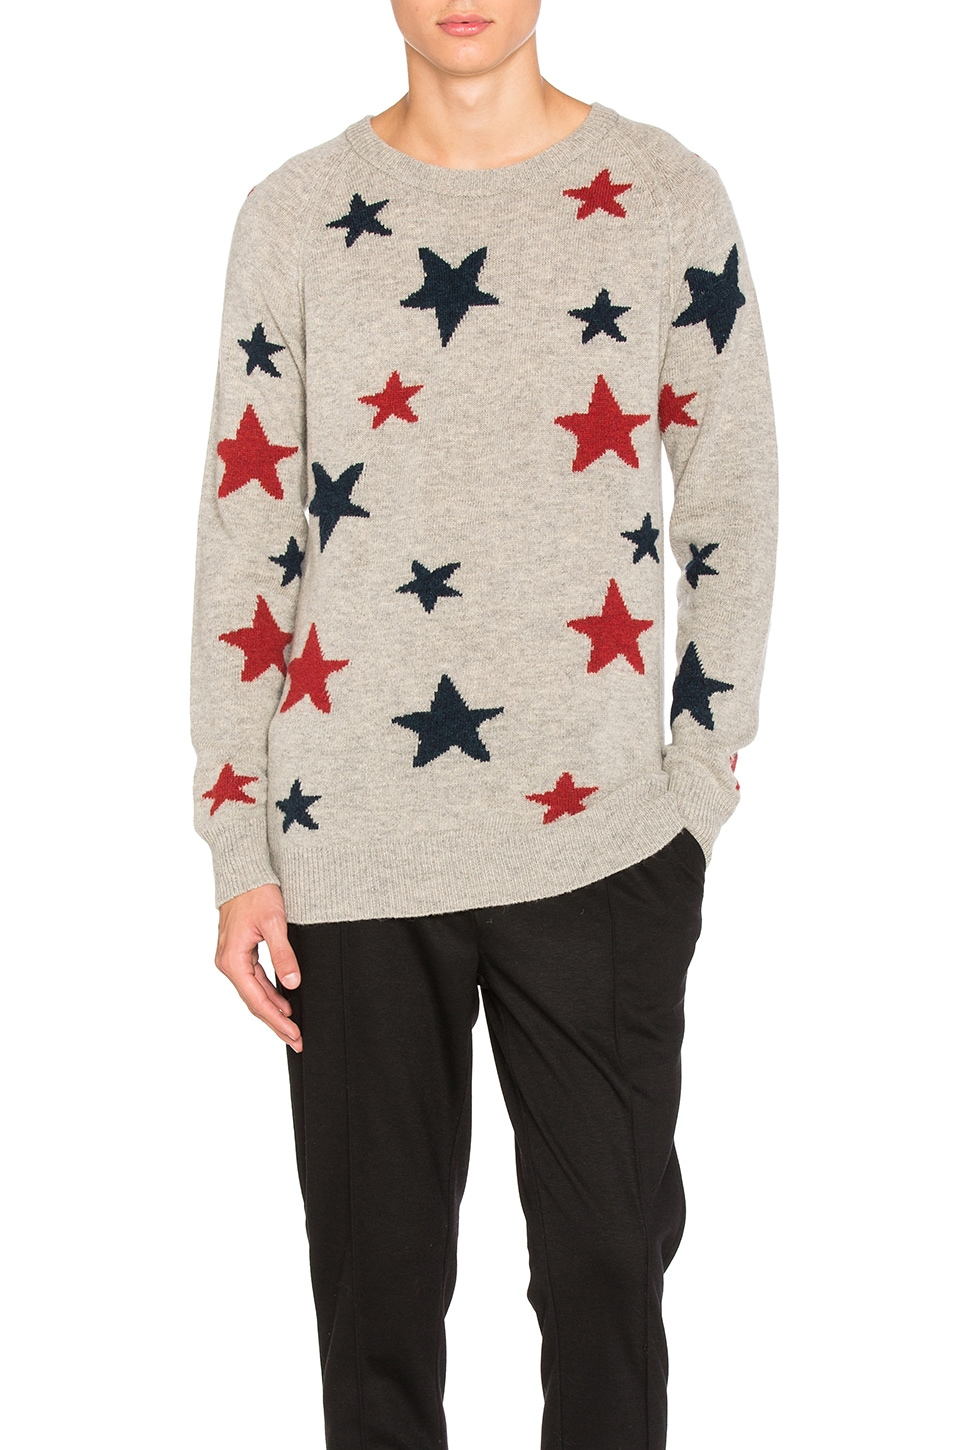 Star Pattern Crewneck Sweater by Scotch & Soda